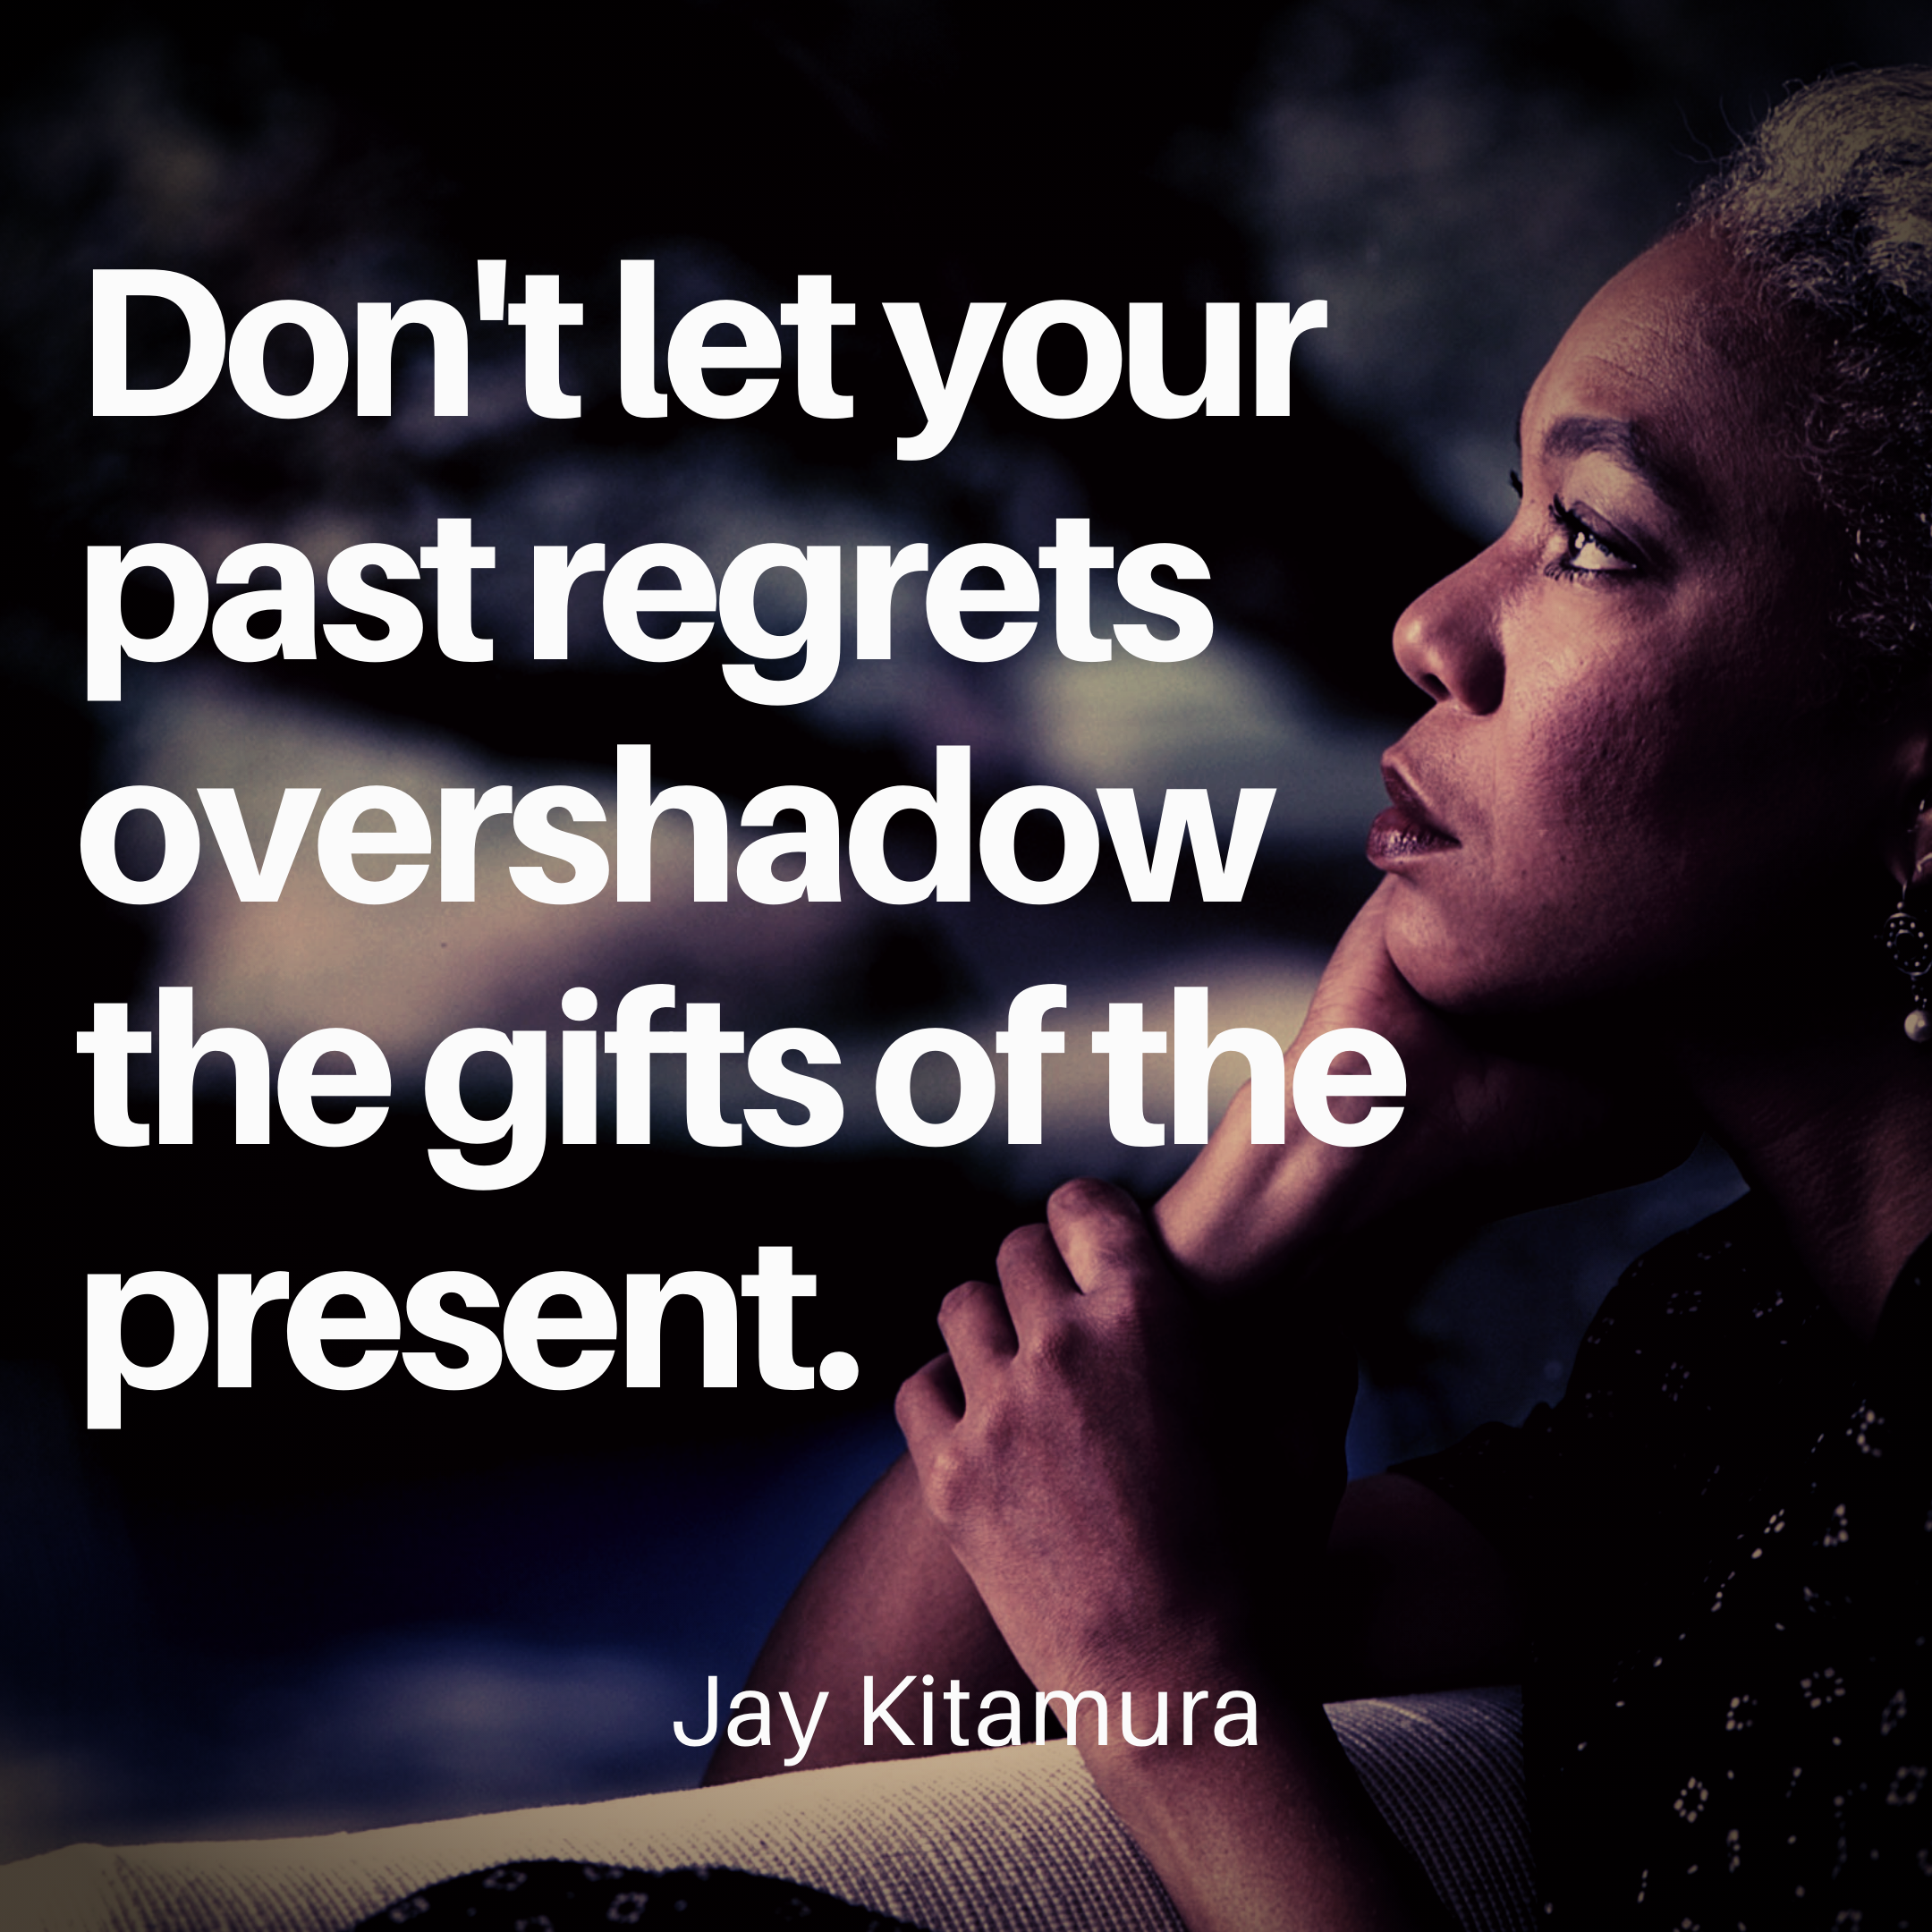 """Don't let your past regrets overshadow the gifts of the present"" – Jay Kitamura [2160×2160]"